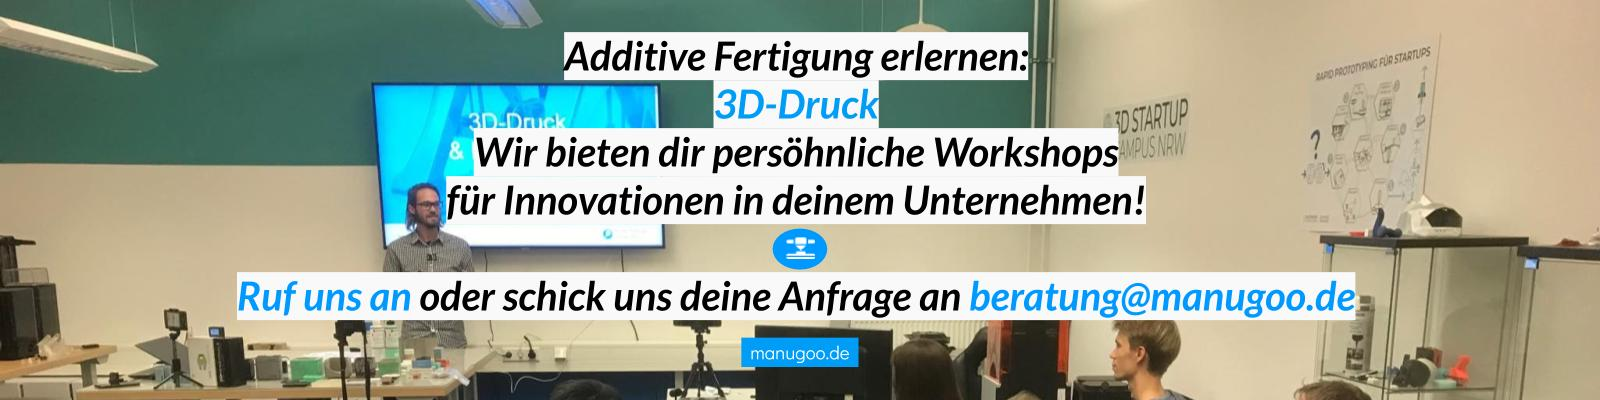 3d-druck-Workshop